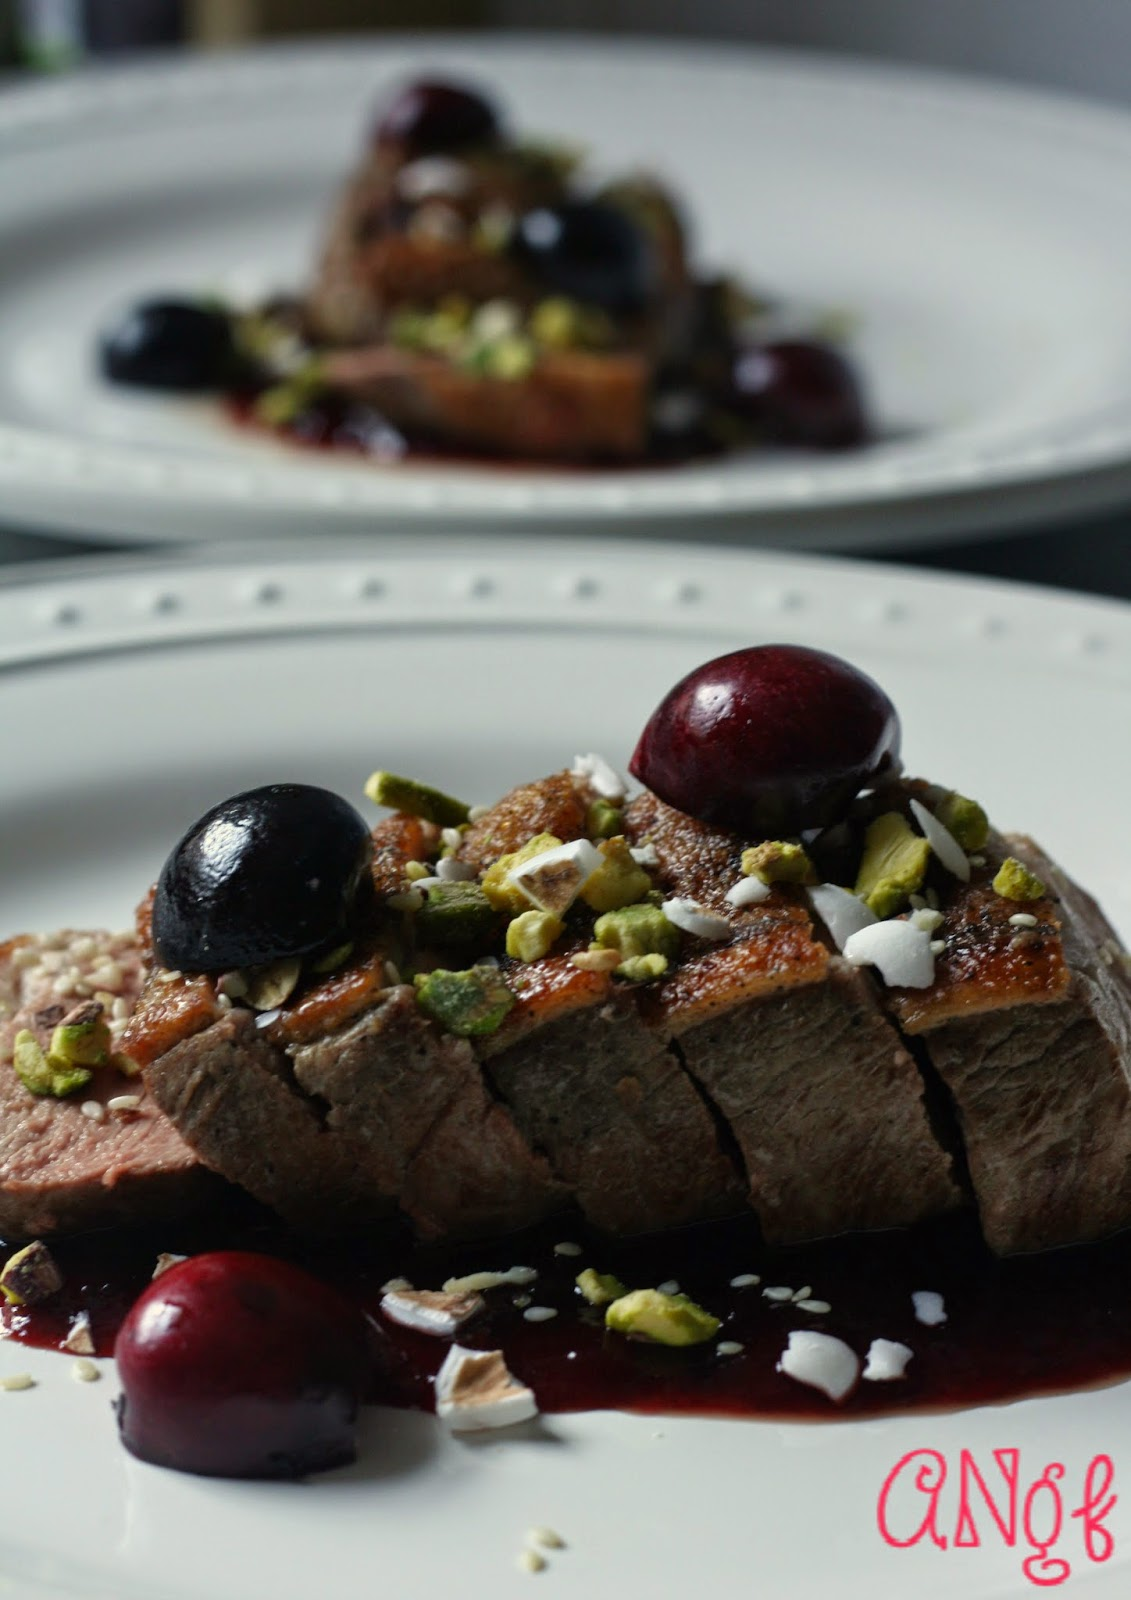 Cherries, pistachios, Jordan almonds with duck breast from Anyonita-nibbles.co.uk